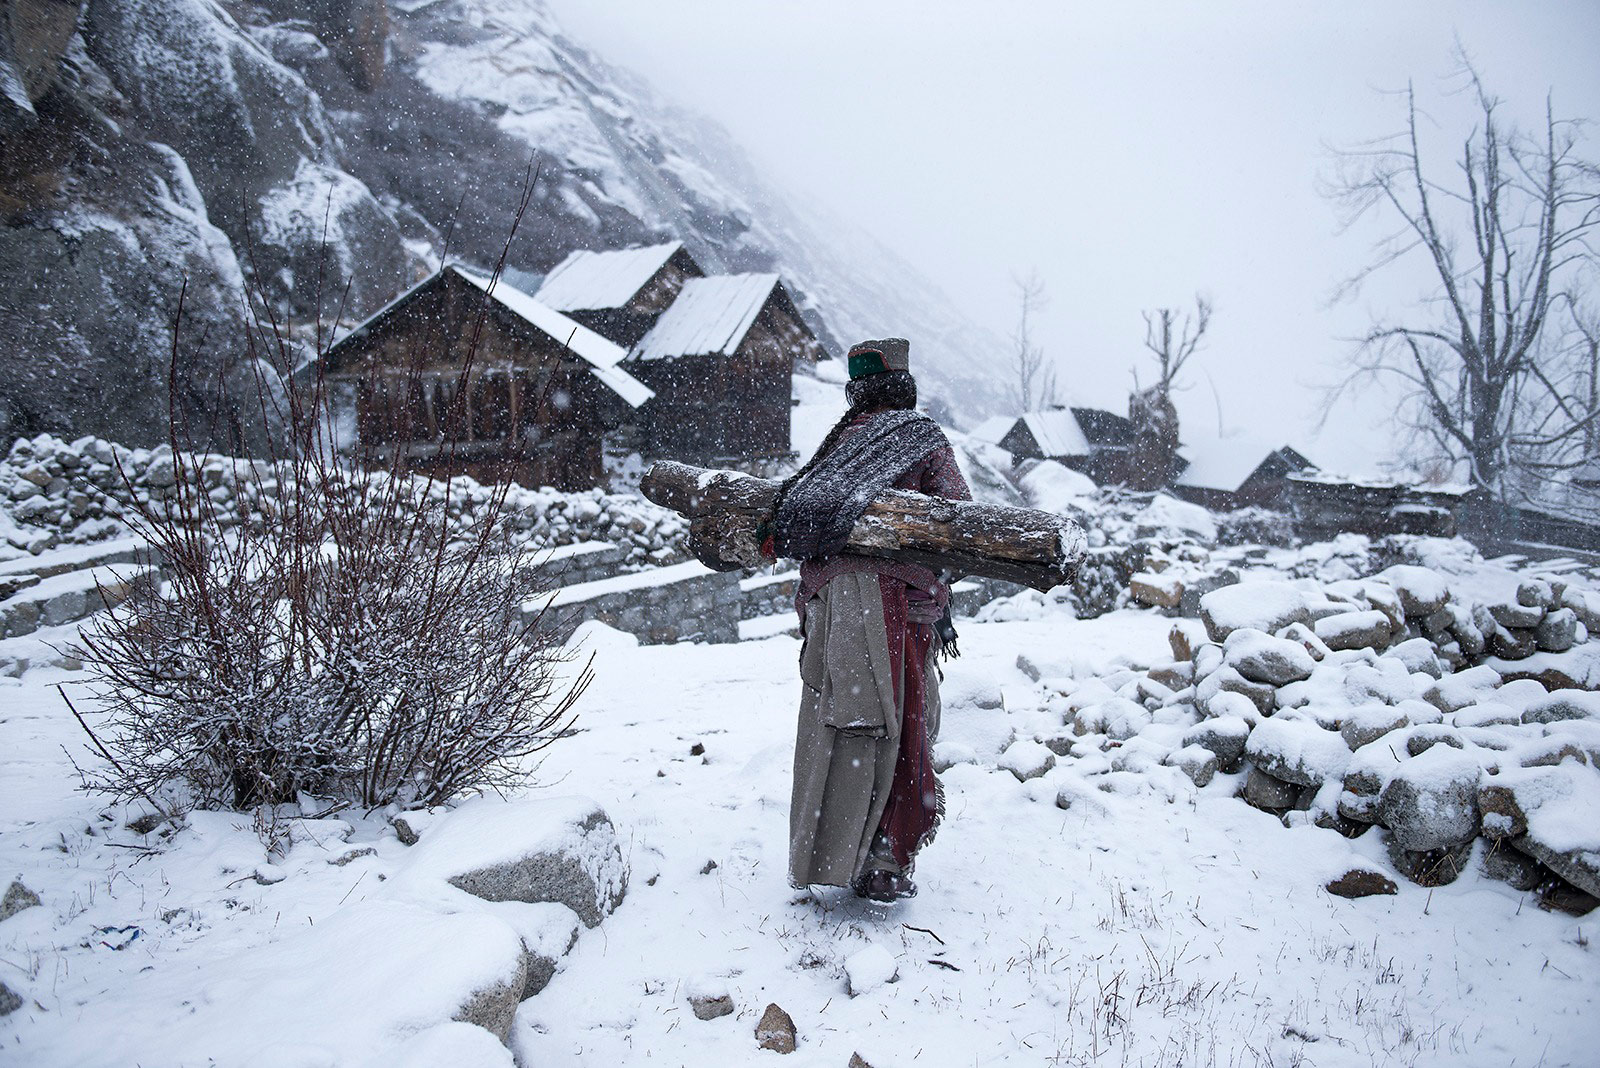 People Third Place: Remote Life at -21 Degrees